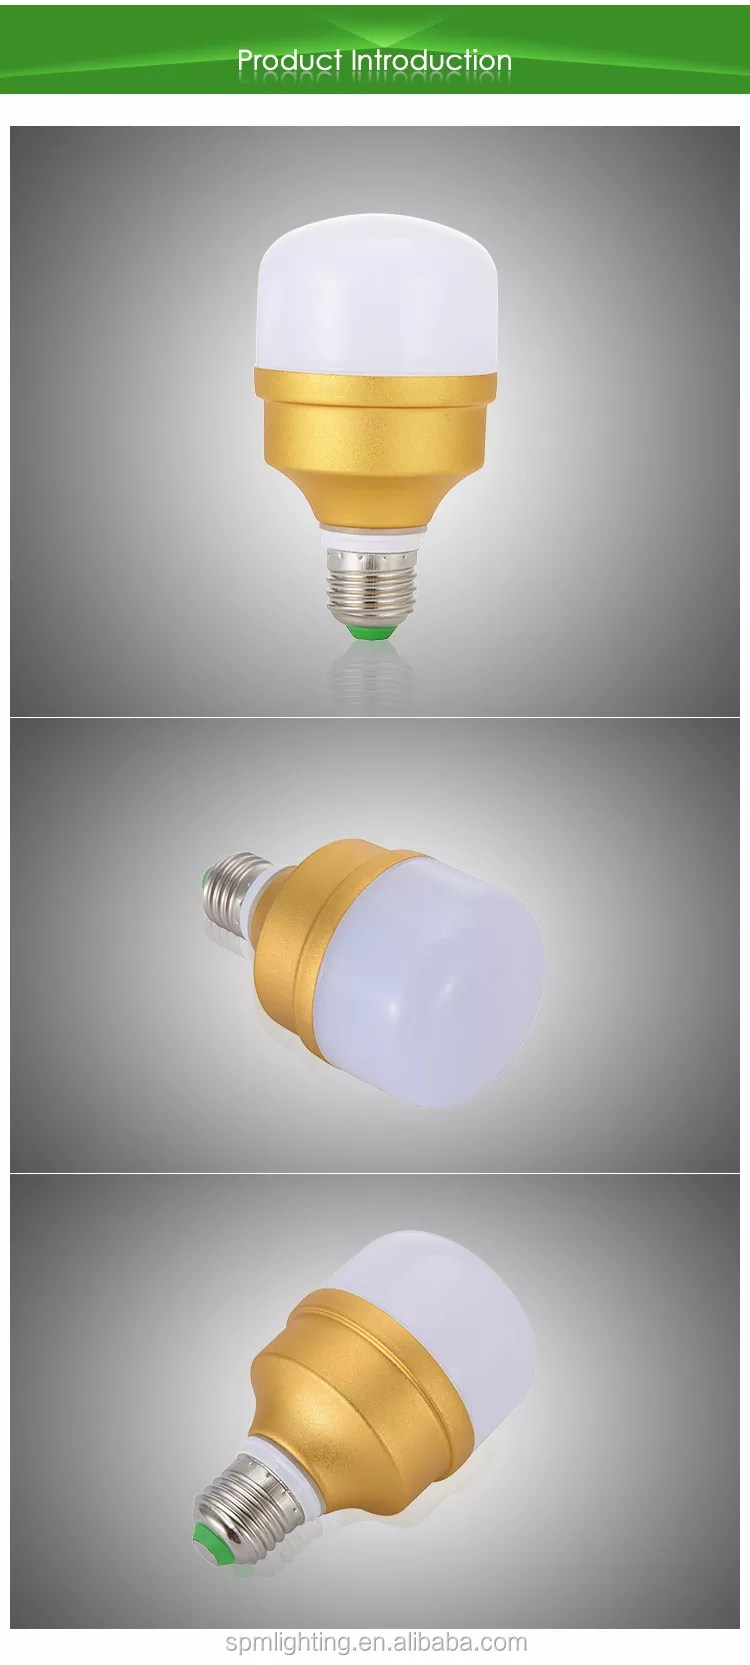 5 Watt Led Ce Rohs 5 Watt Led Bulb 220 Volt Led Lights Lead Light Bulb Buy Yellow Led Light Bulbs 5 Watt Ce Rohs 5 Watt Led Bulb 220 Volt Led Lights Lead Light